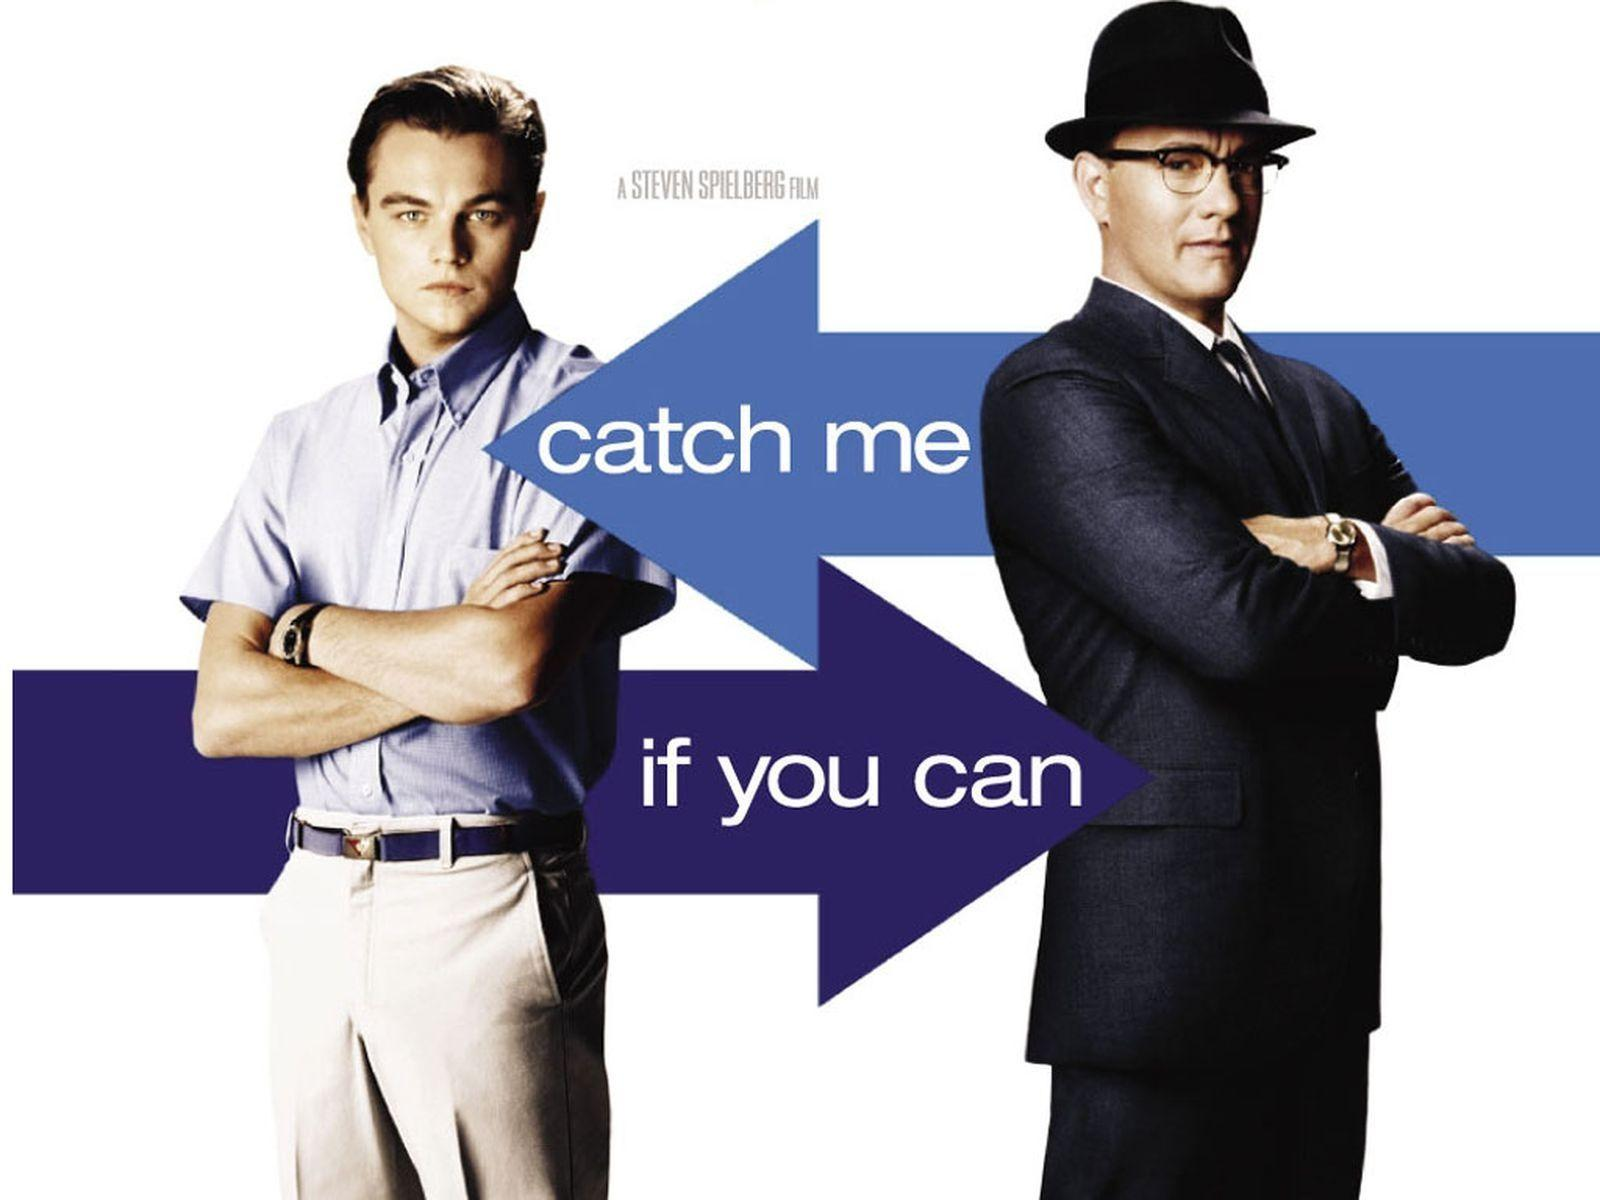 Tom Hanks Catch Me If You Can Movie Wallpaper - HD Wallpapers - Free ...